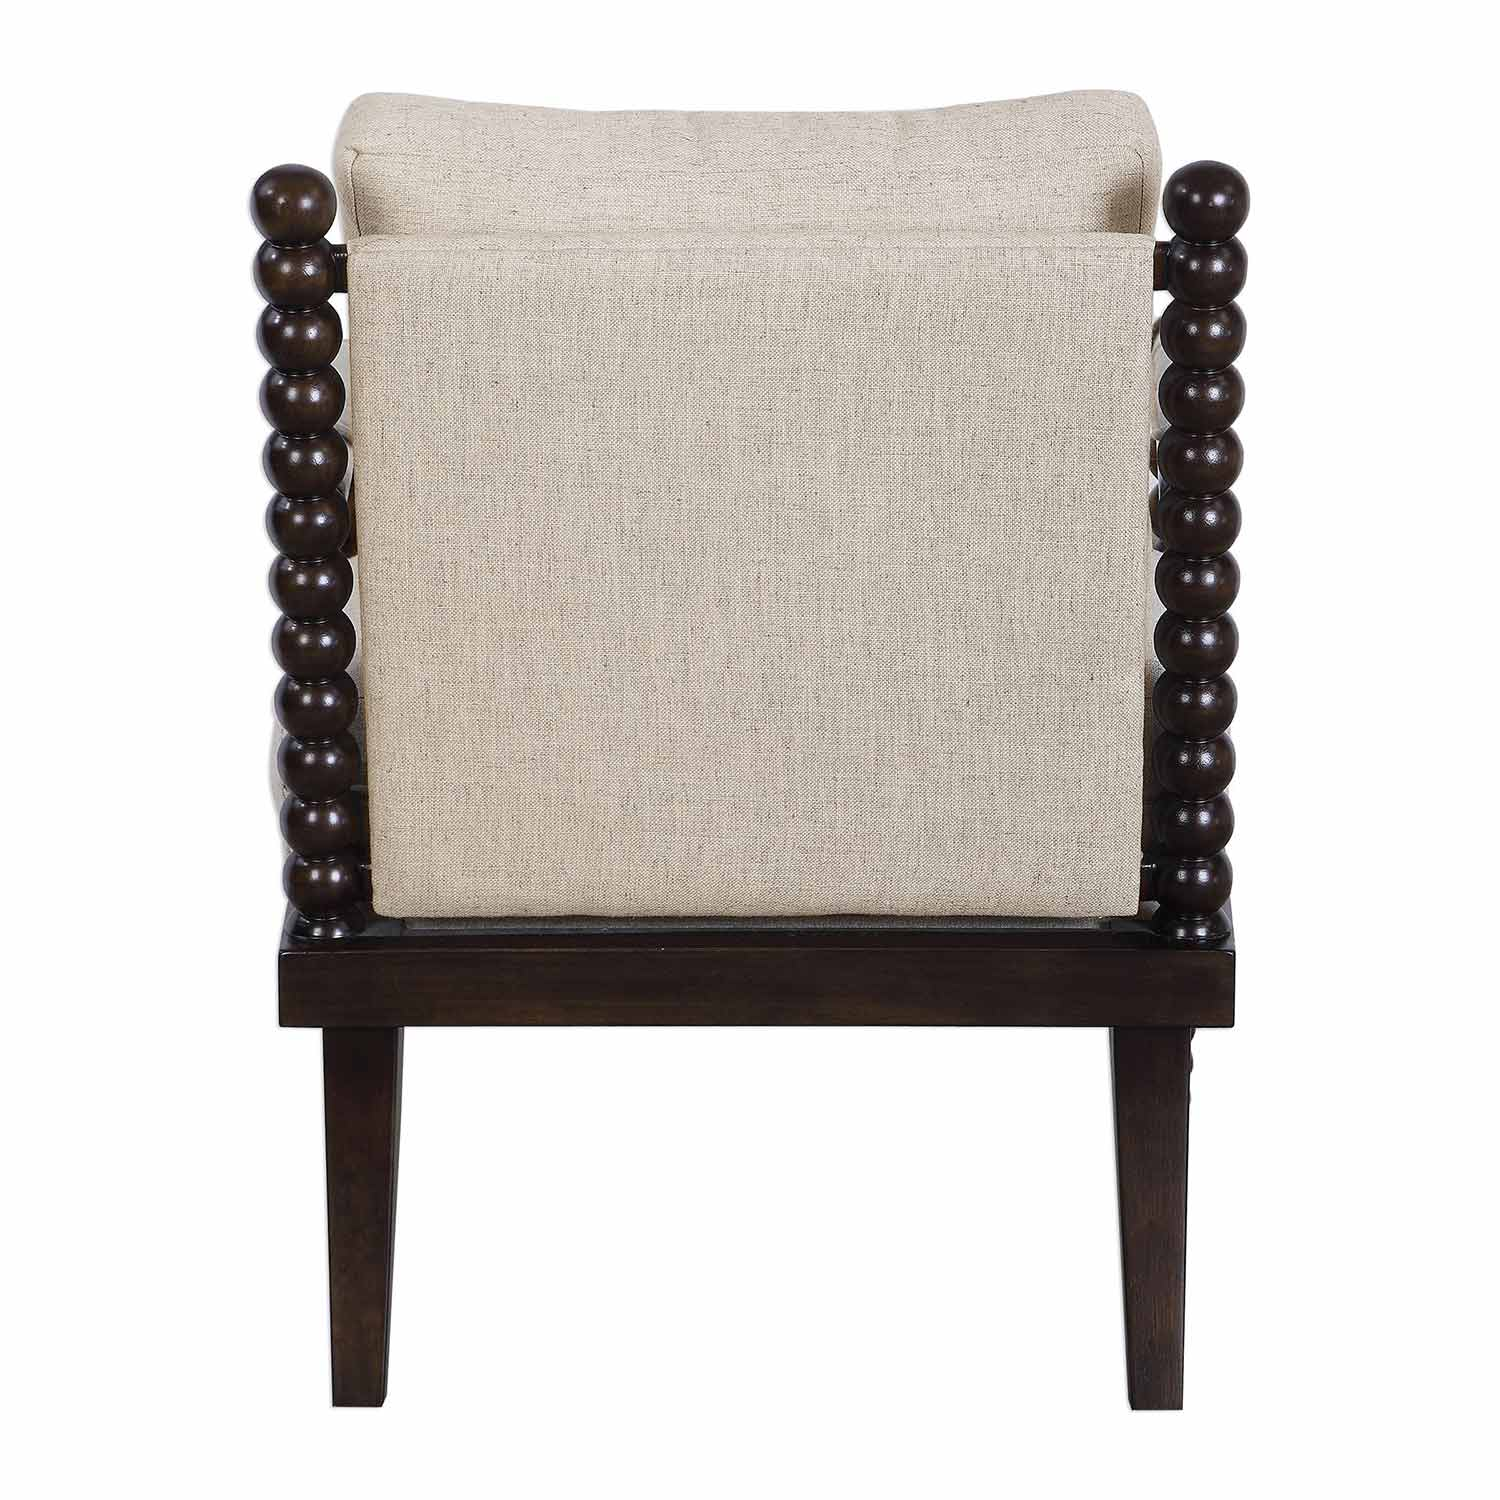 Uttermost Lachlan Accent Chair - Oatmeal